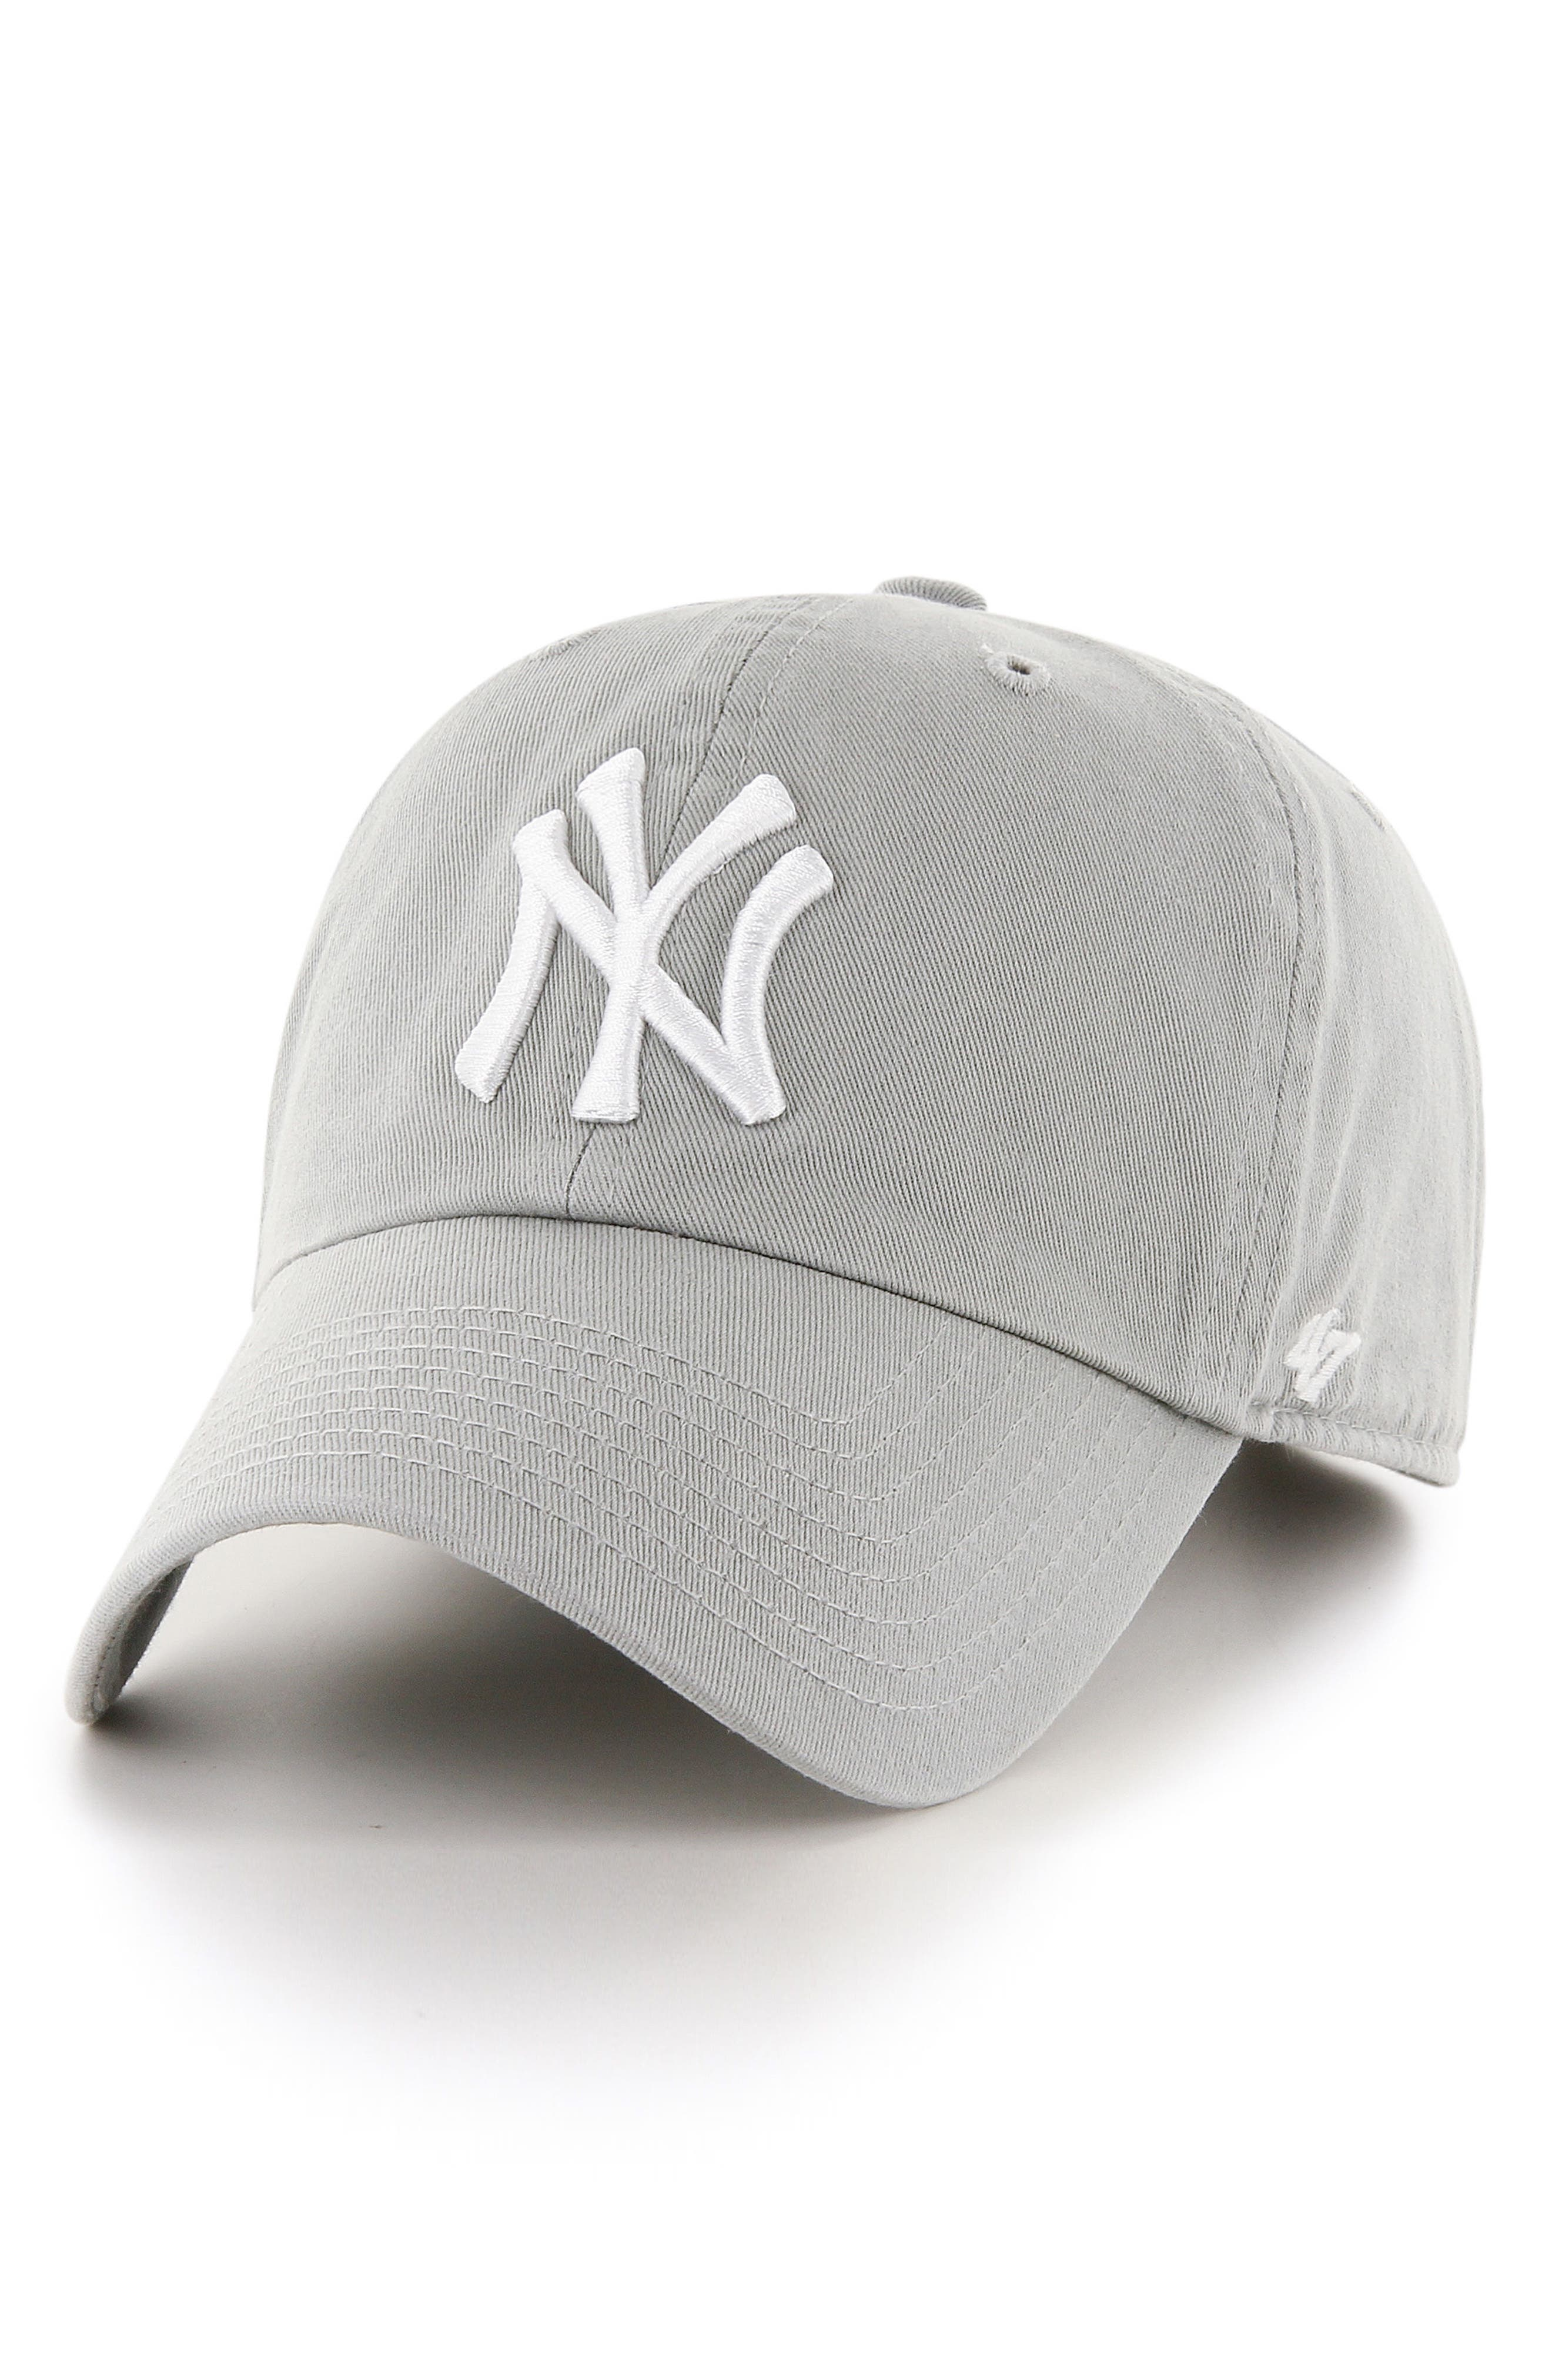 Alternate Image 1 Selected - '47 Clean Up NY Yankees Baseball Cap